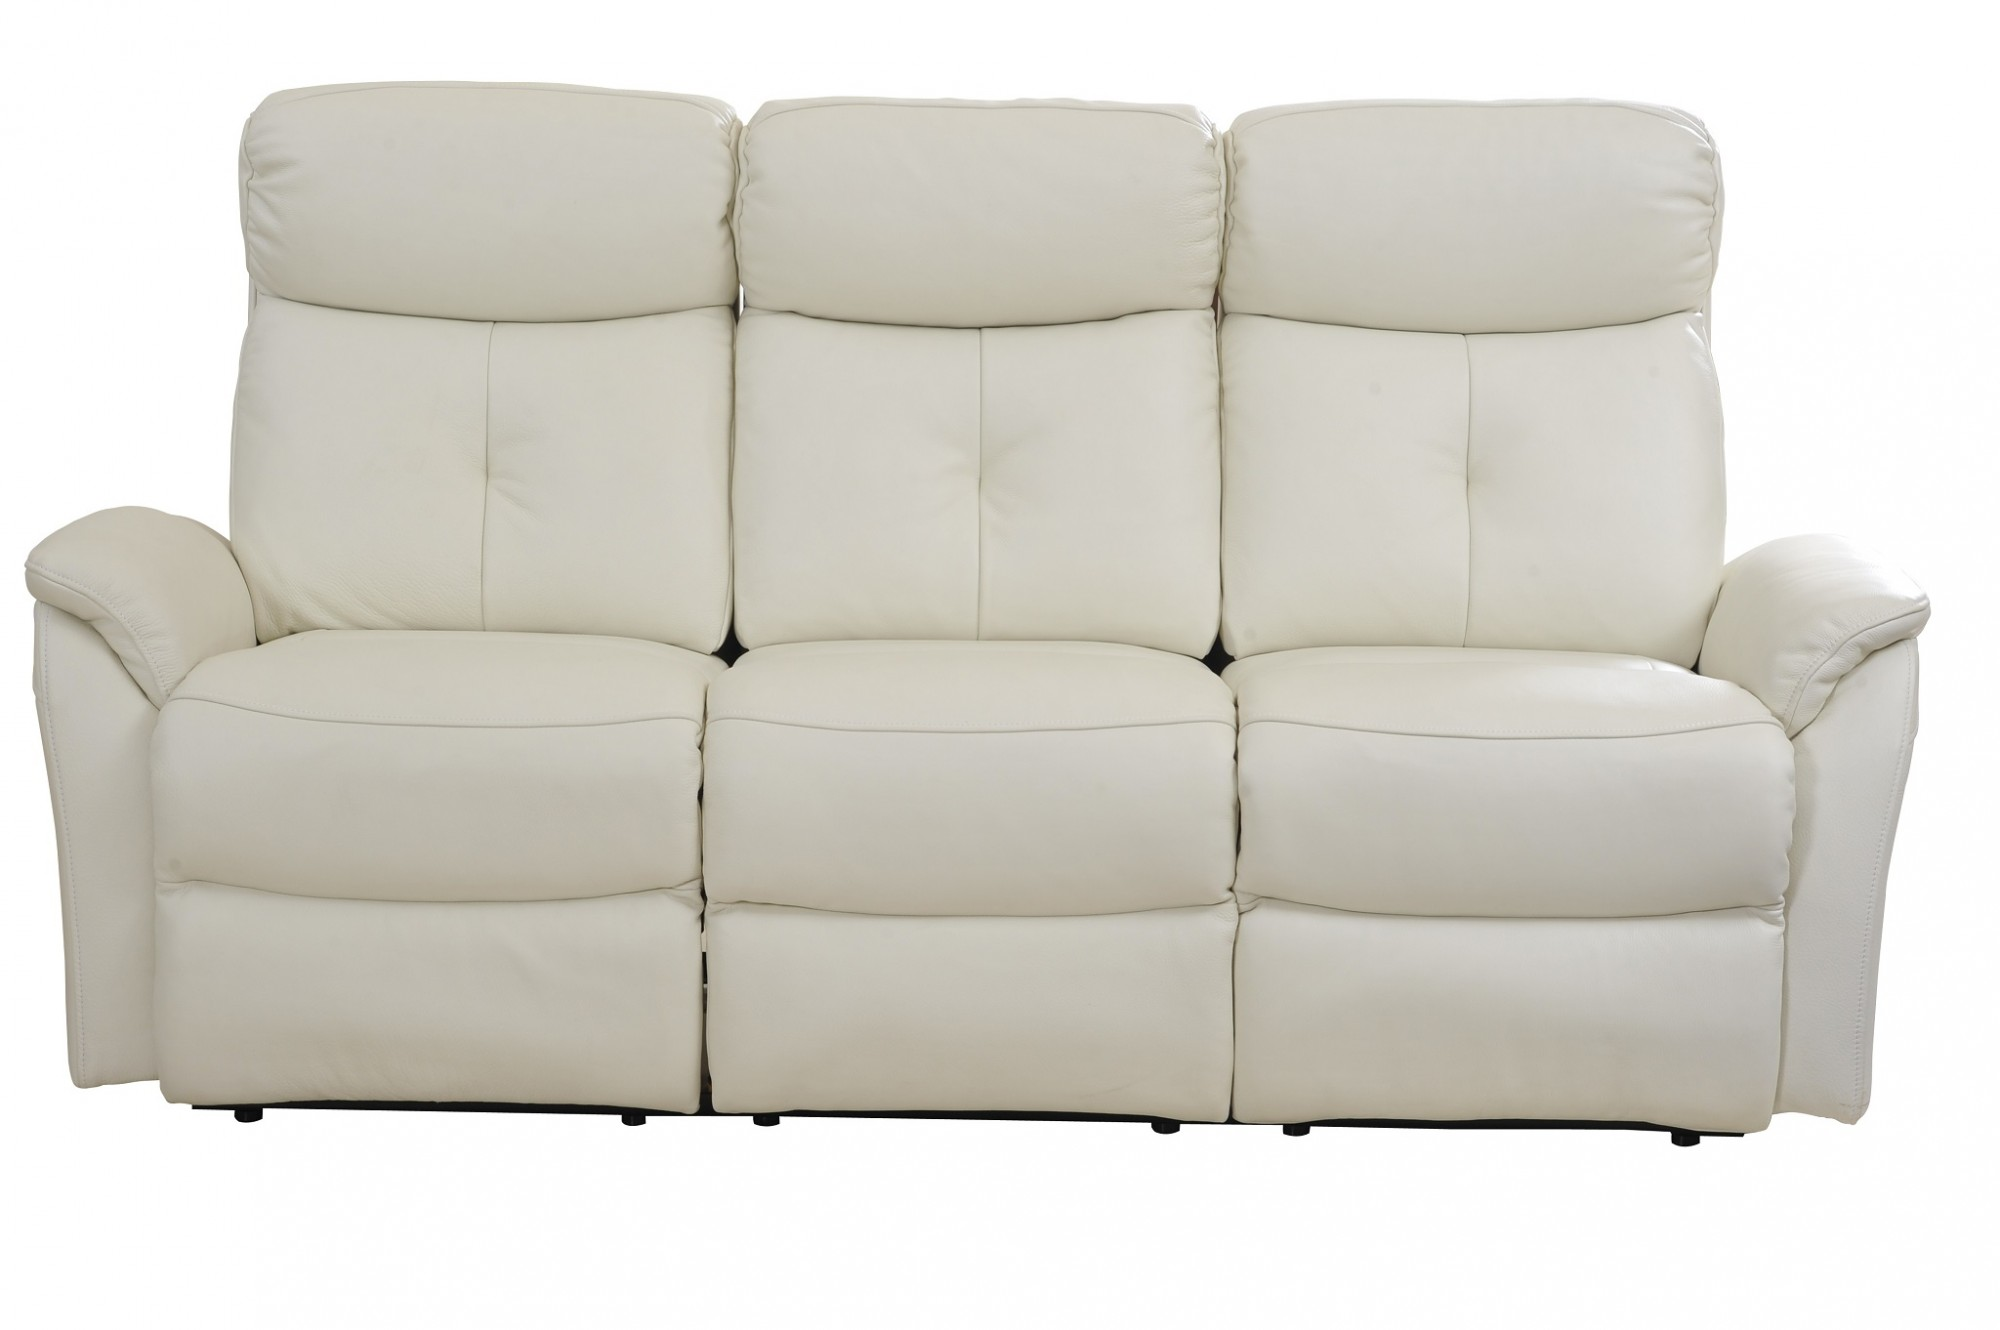 Mica 3 seat Sofa bed 5